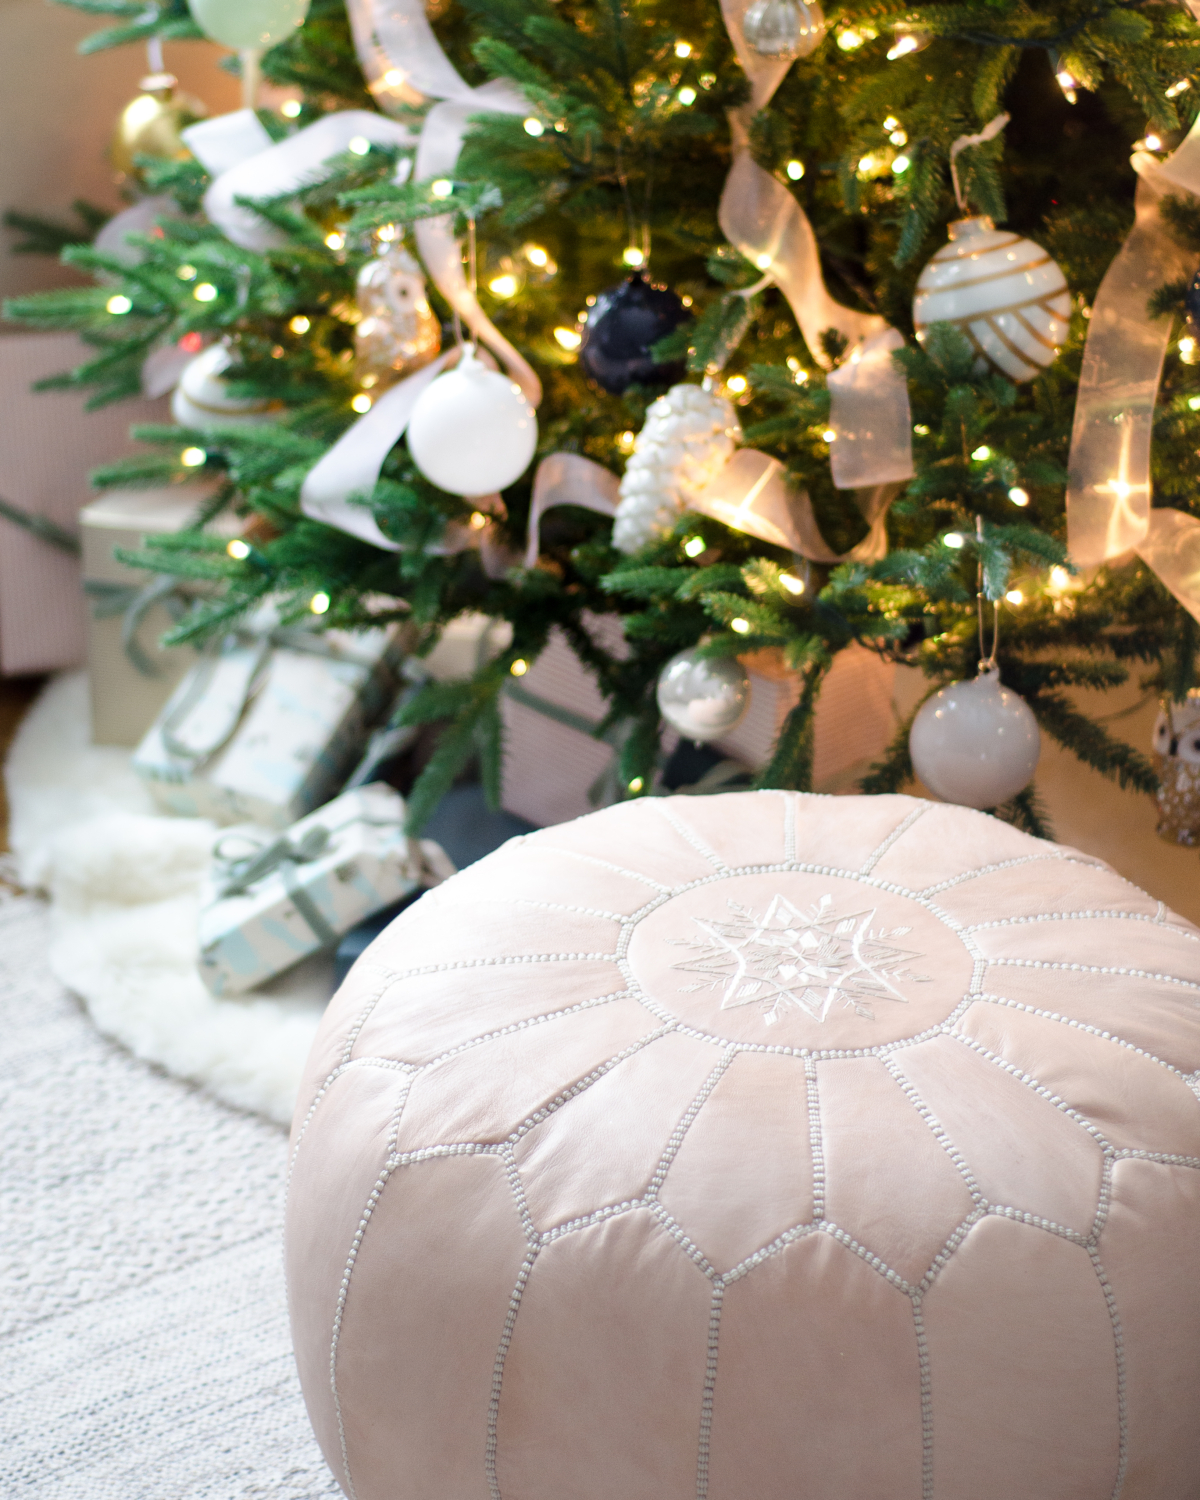 Christmas tree decorated in blush pink, deep teal, white, gold, and navy blue.